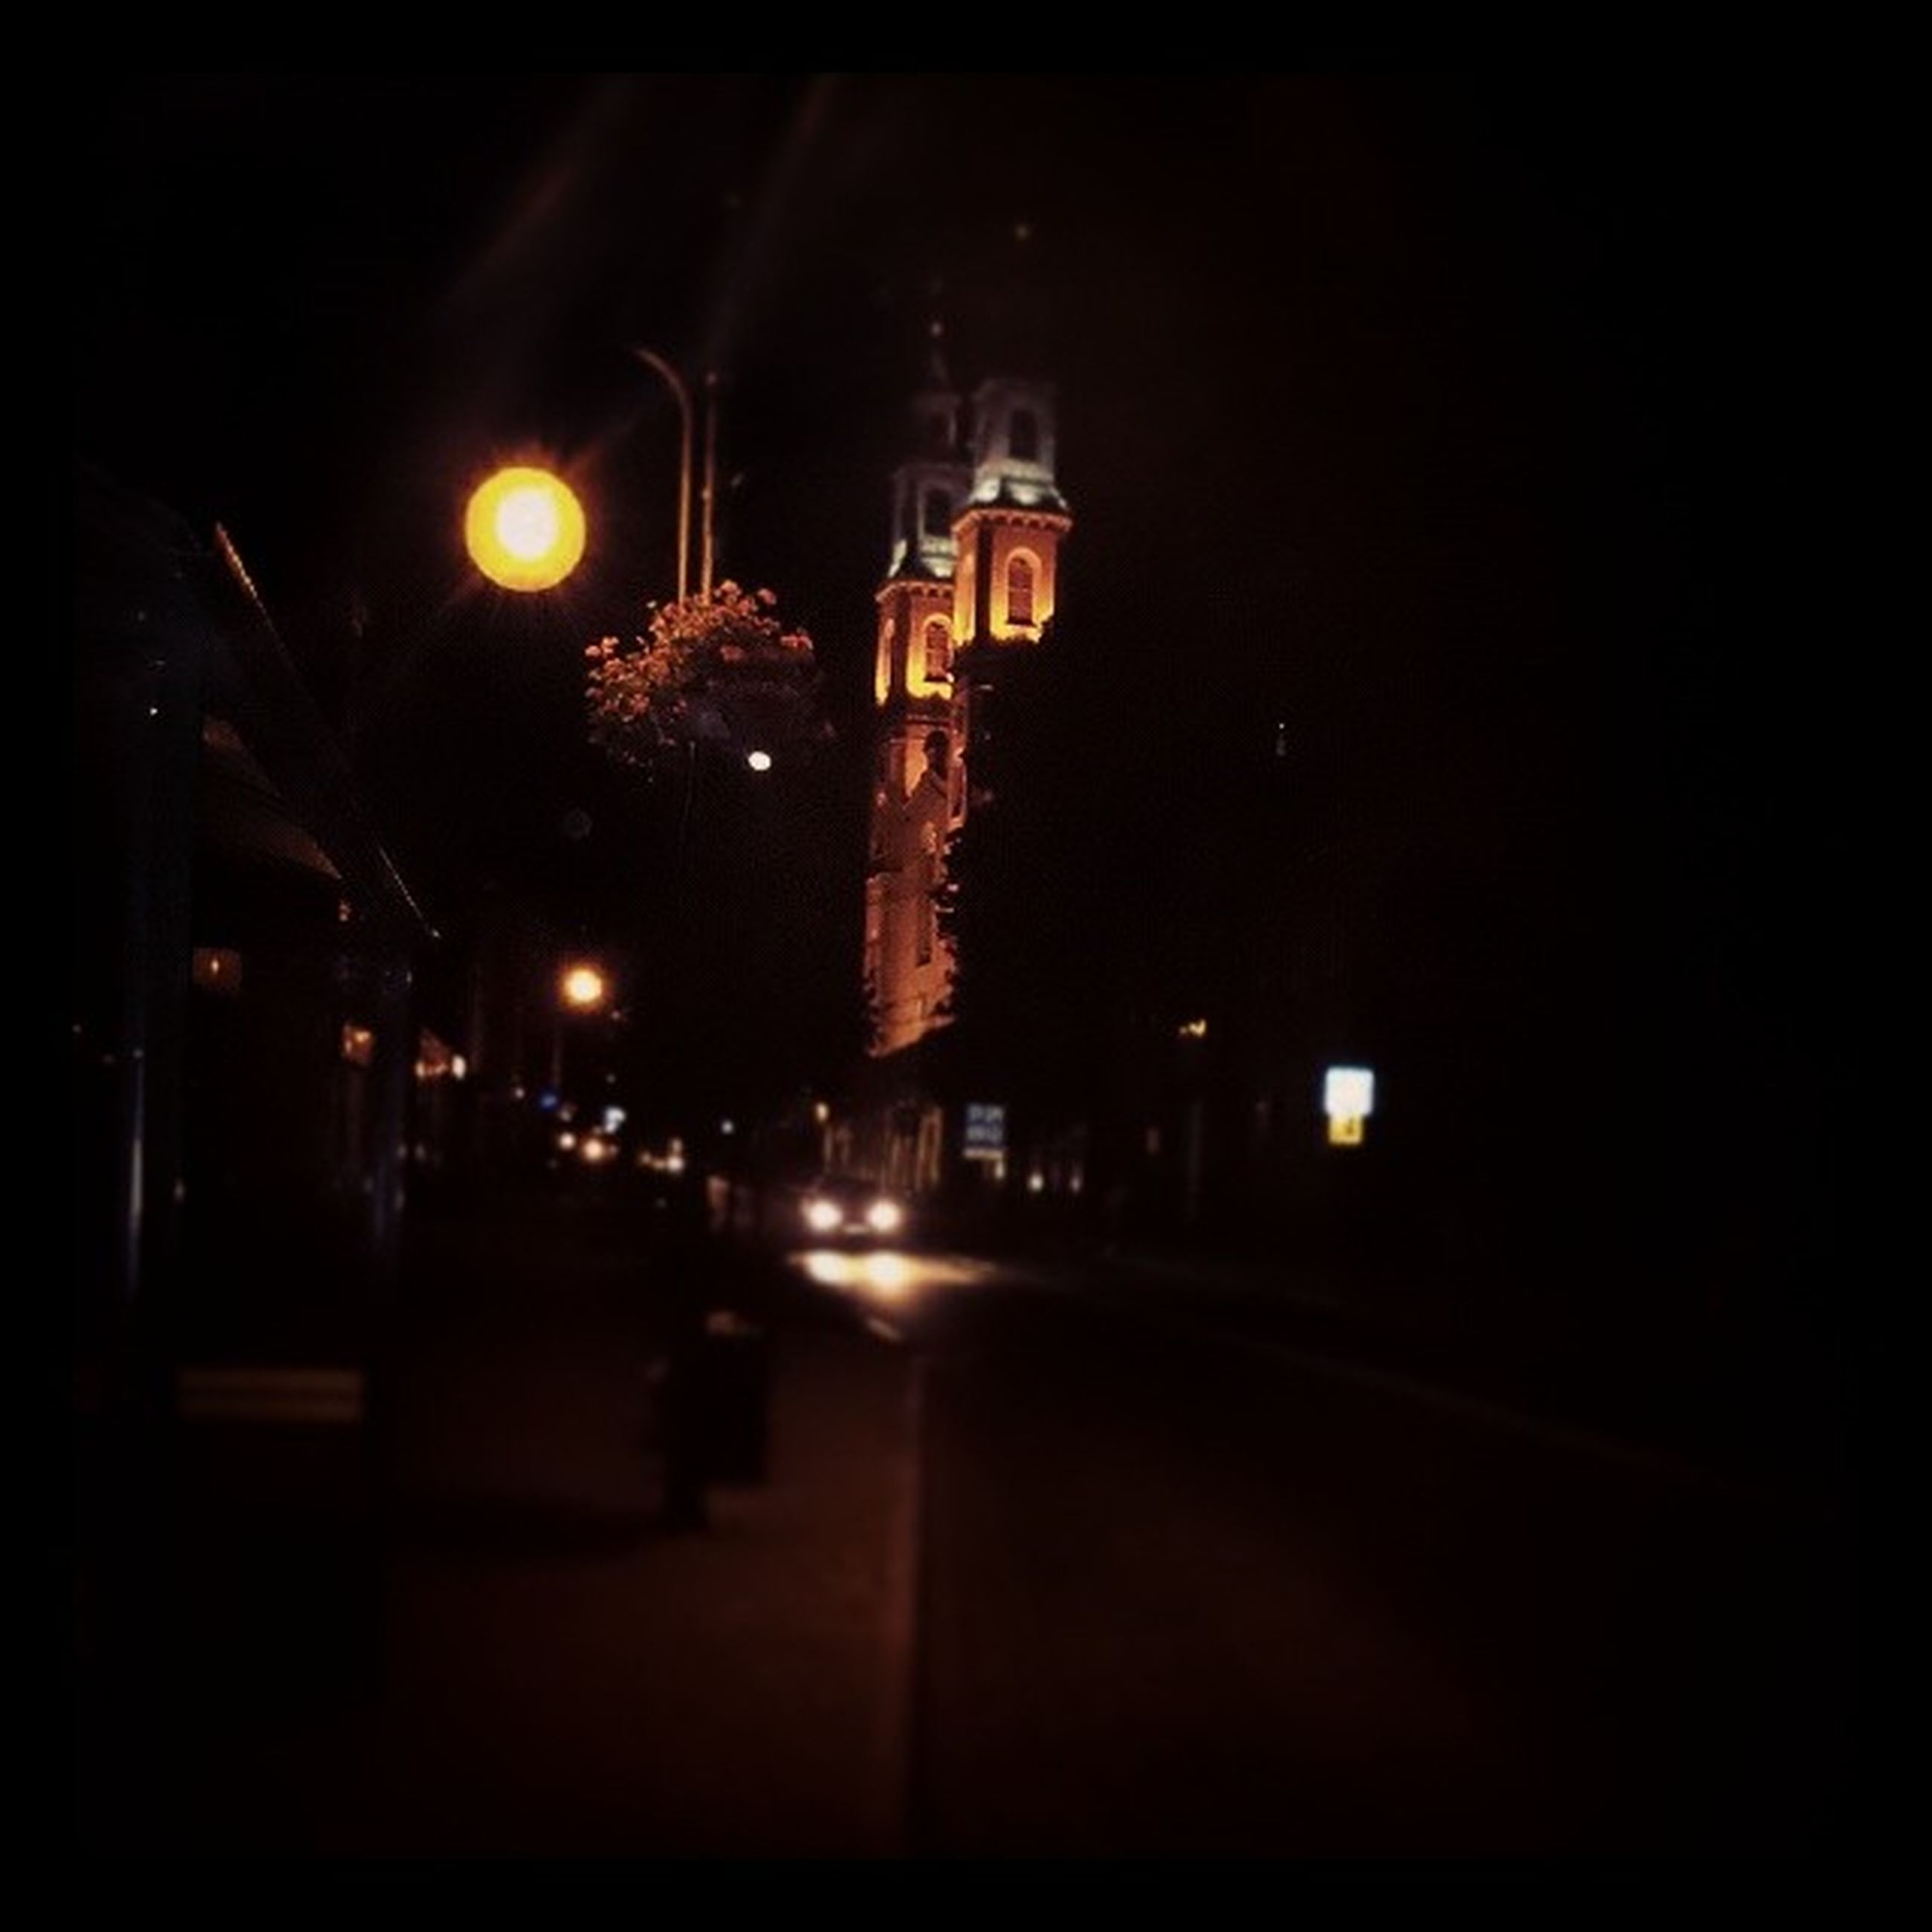 night, illuminated, building exterior, architecture, built structure, city, street light, street, tower, clear sky, lighting equipment, road, the way forward, sky, dark, outdoors, tall - high, clock tower, travel destinations, city life